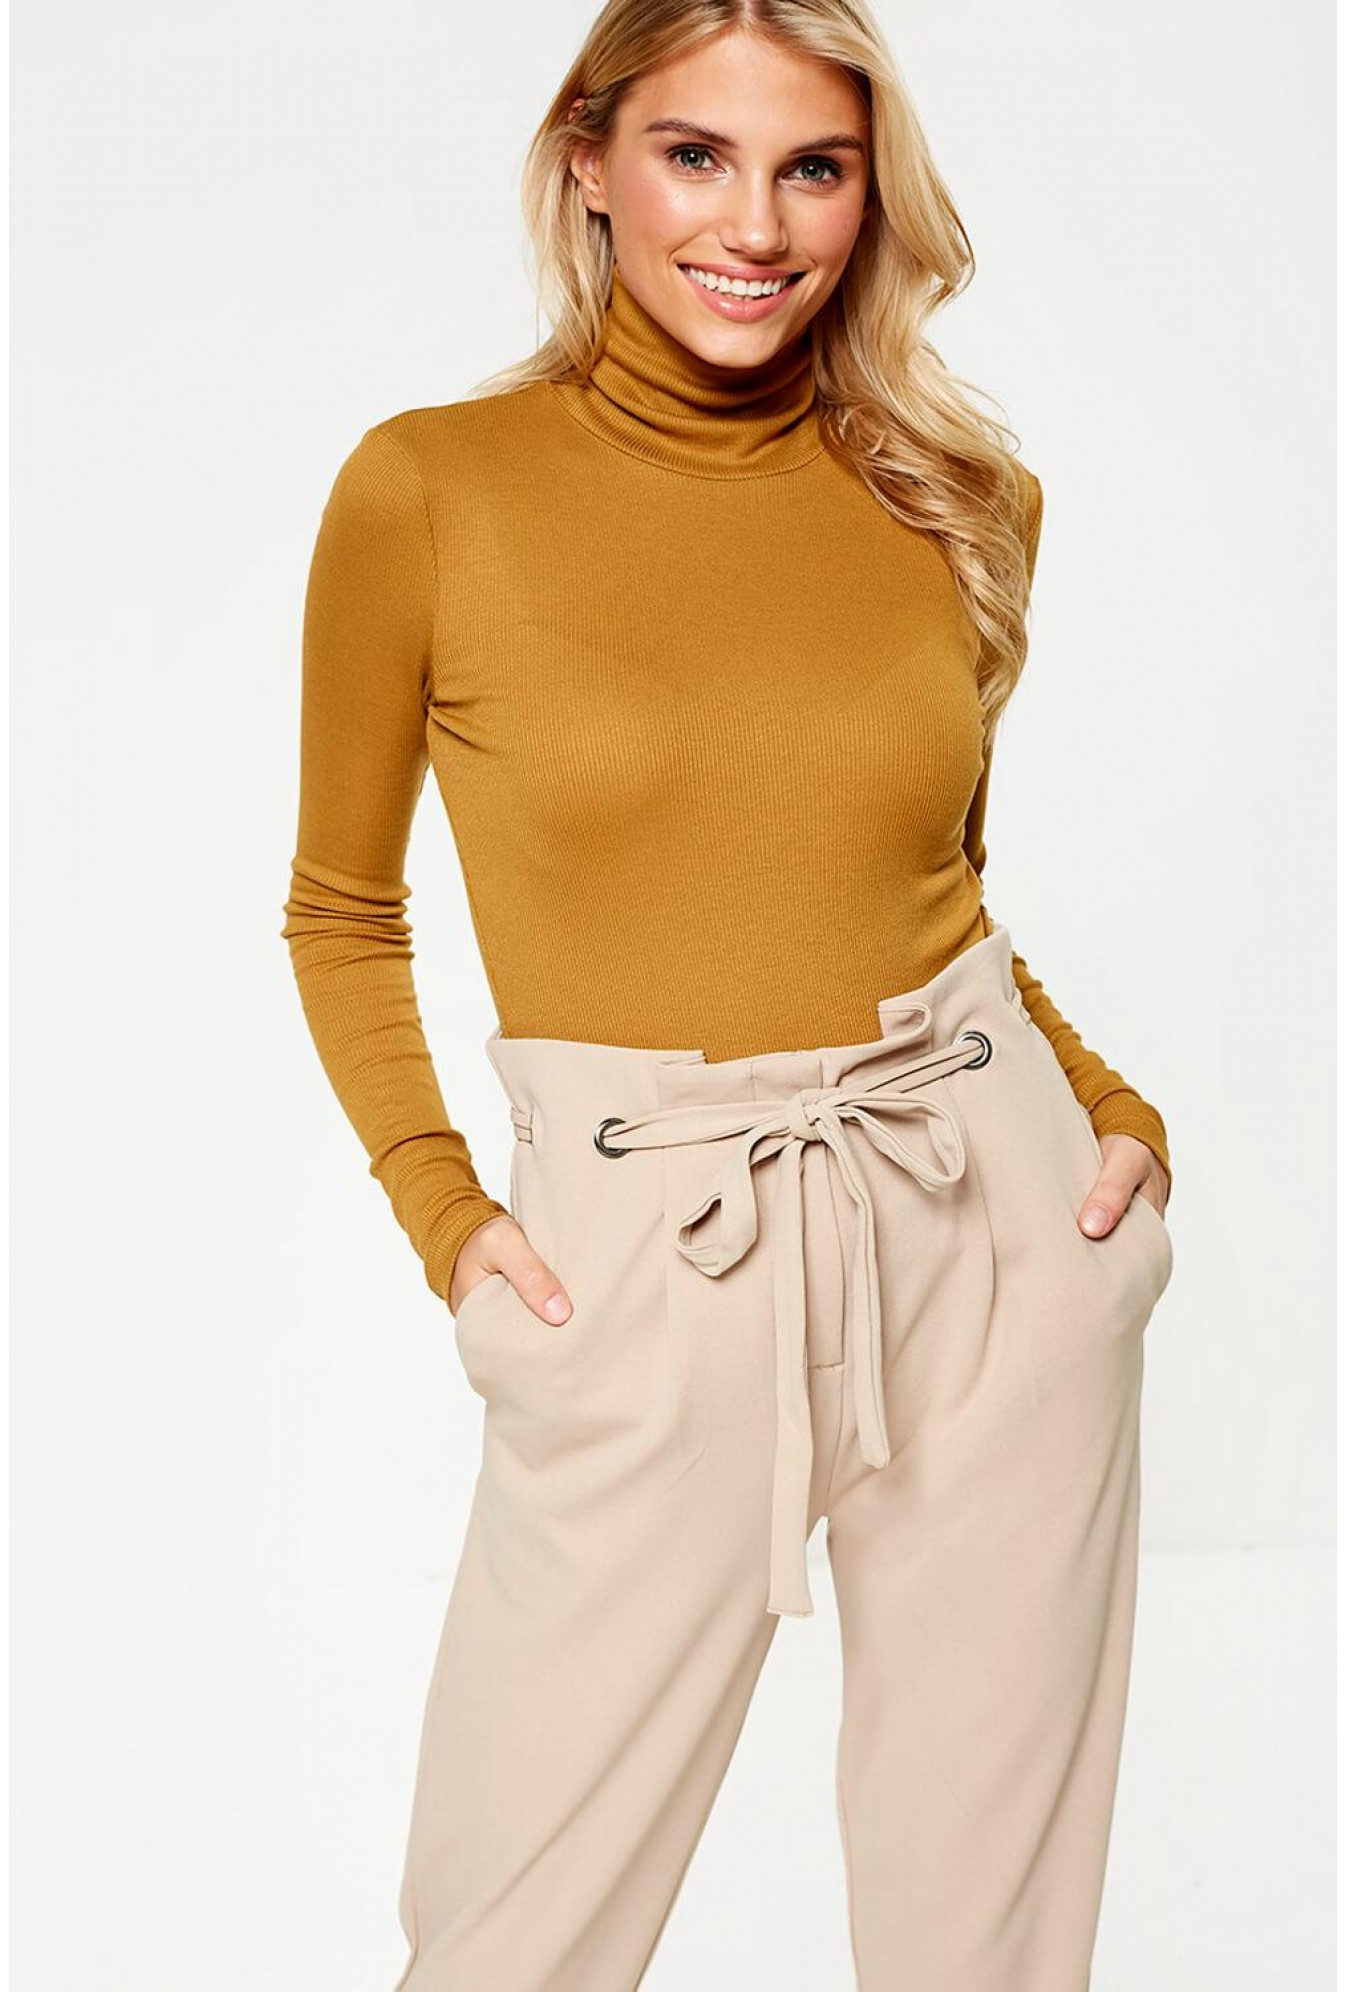 cec74a63d1b Pieces Birdie Roll Neck Top in Mustard | iCLOTHING